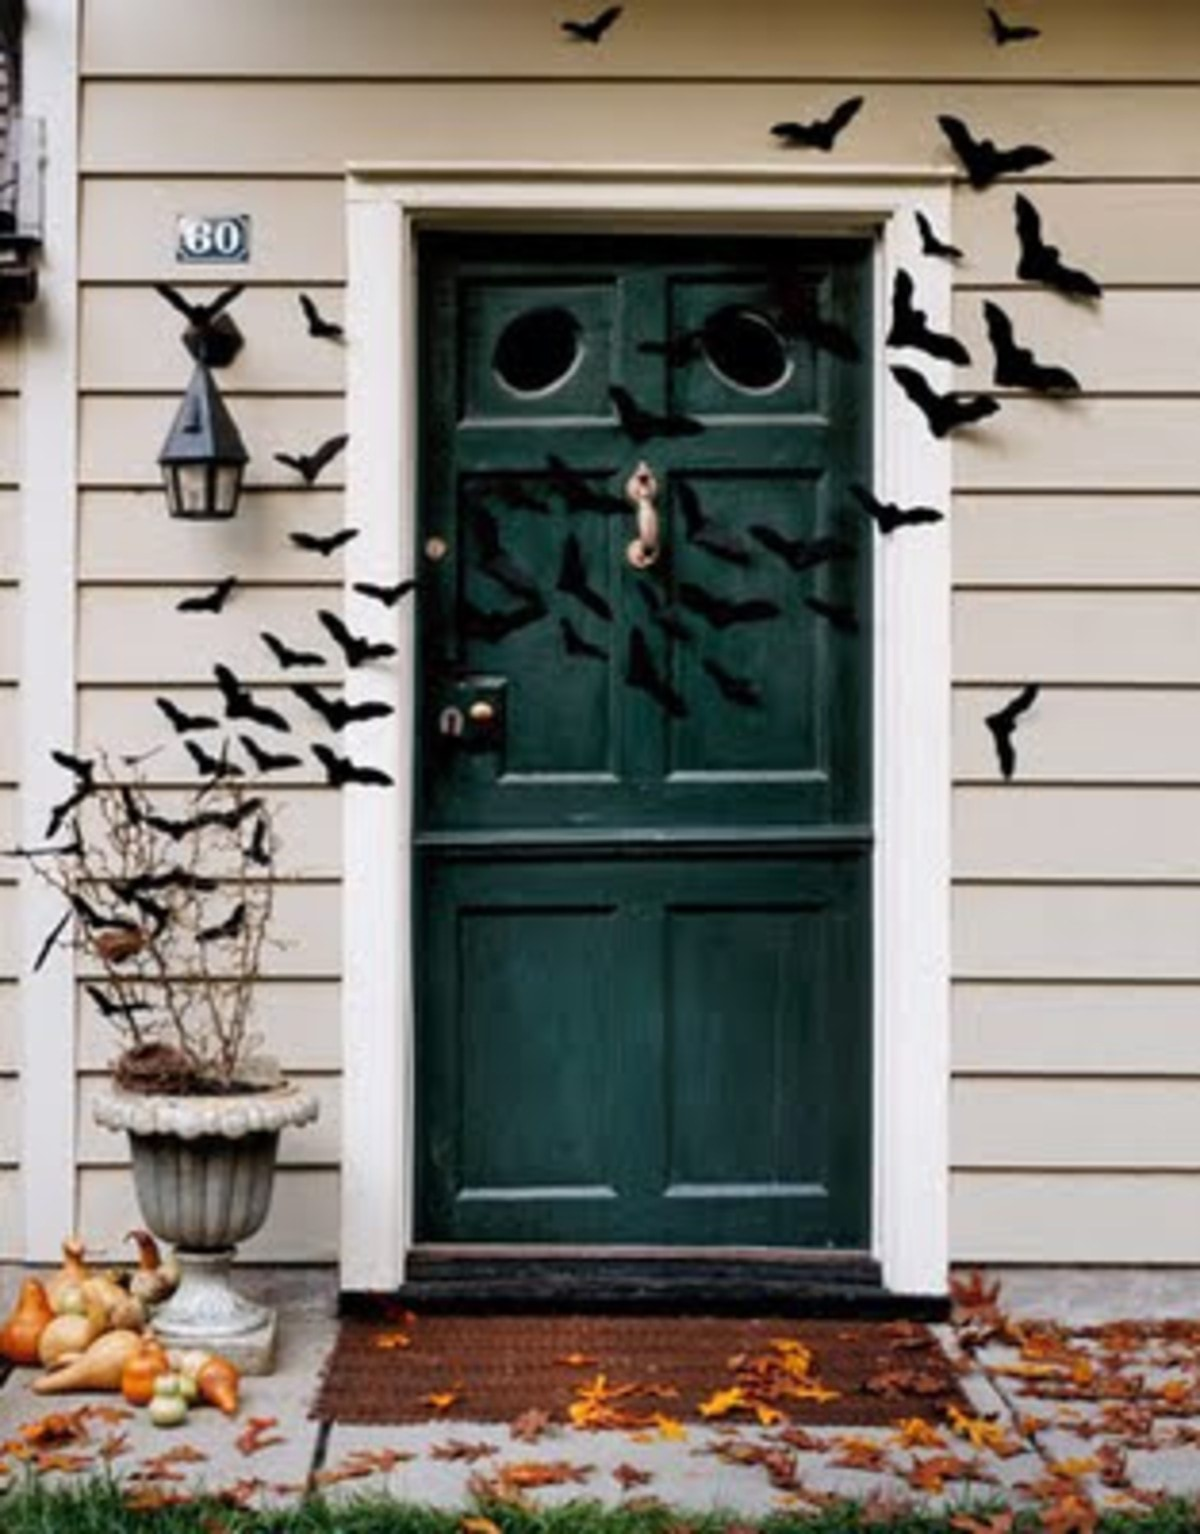 halloween-decor-ideas-entryway-front-door-fall-bats-remodelaholic.com_